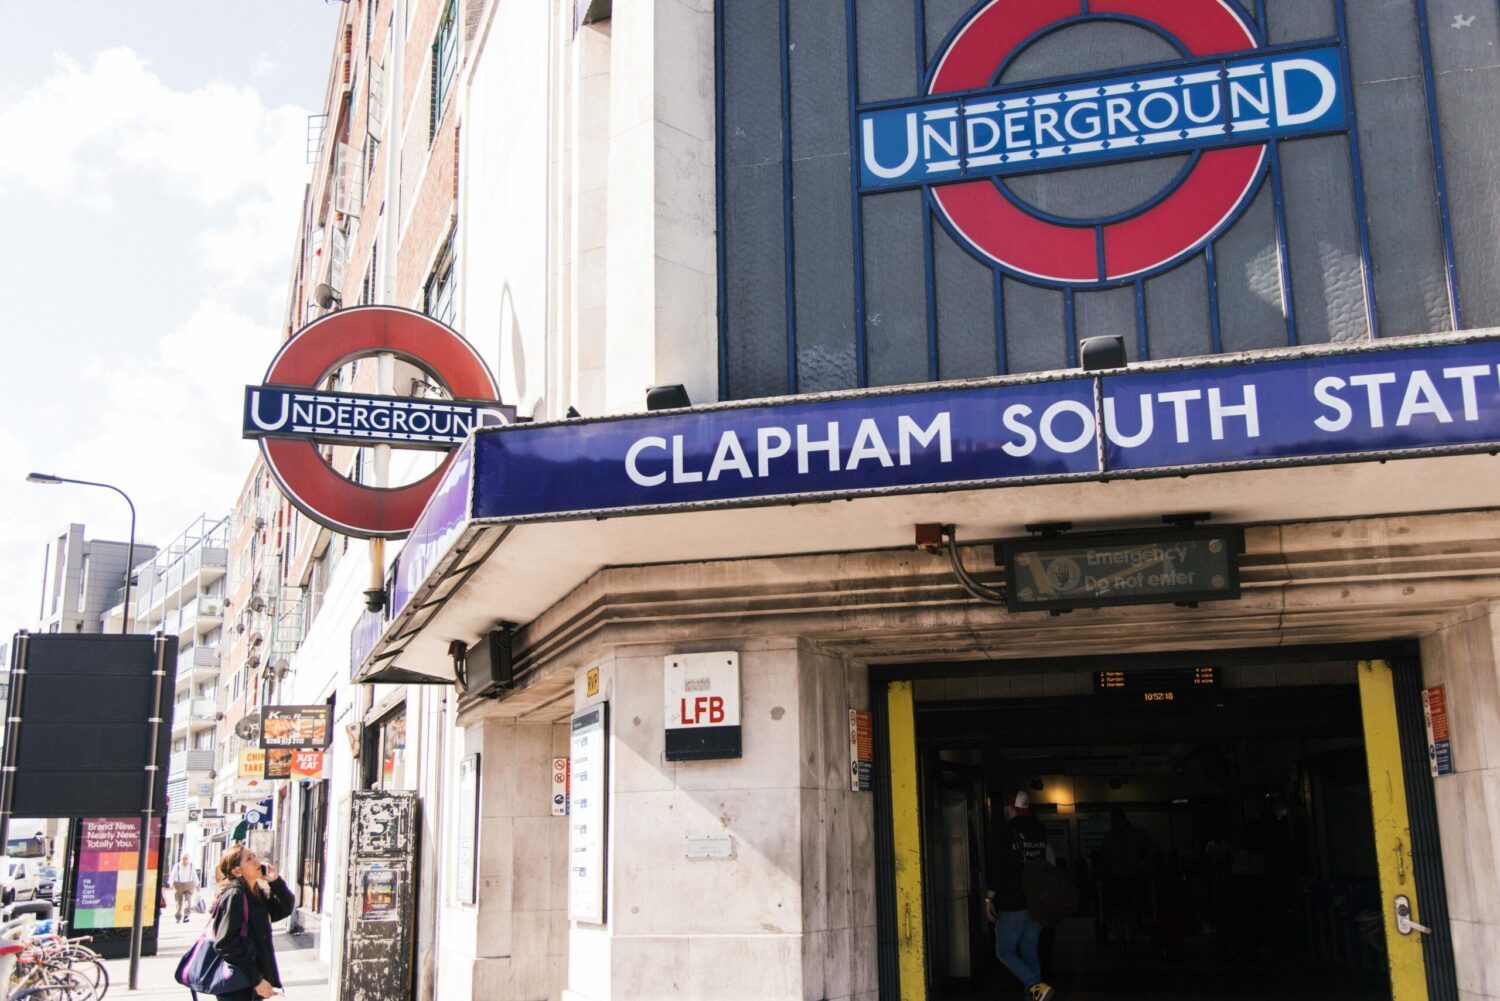 Clapham South Train Station